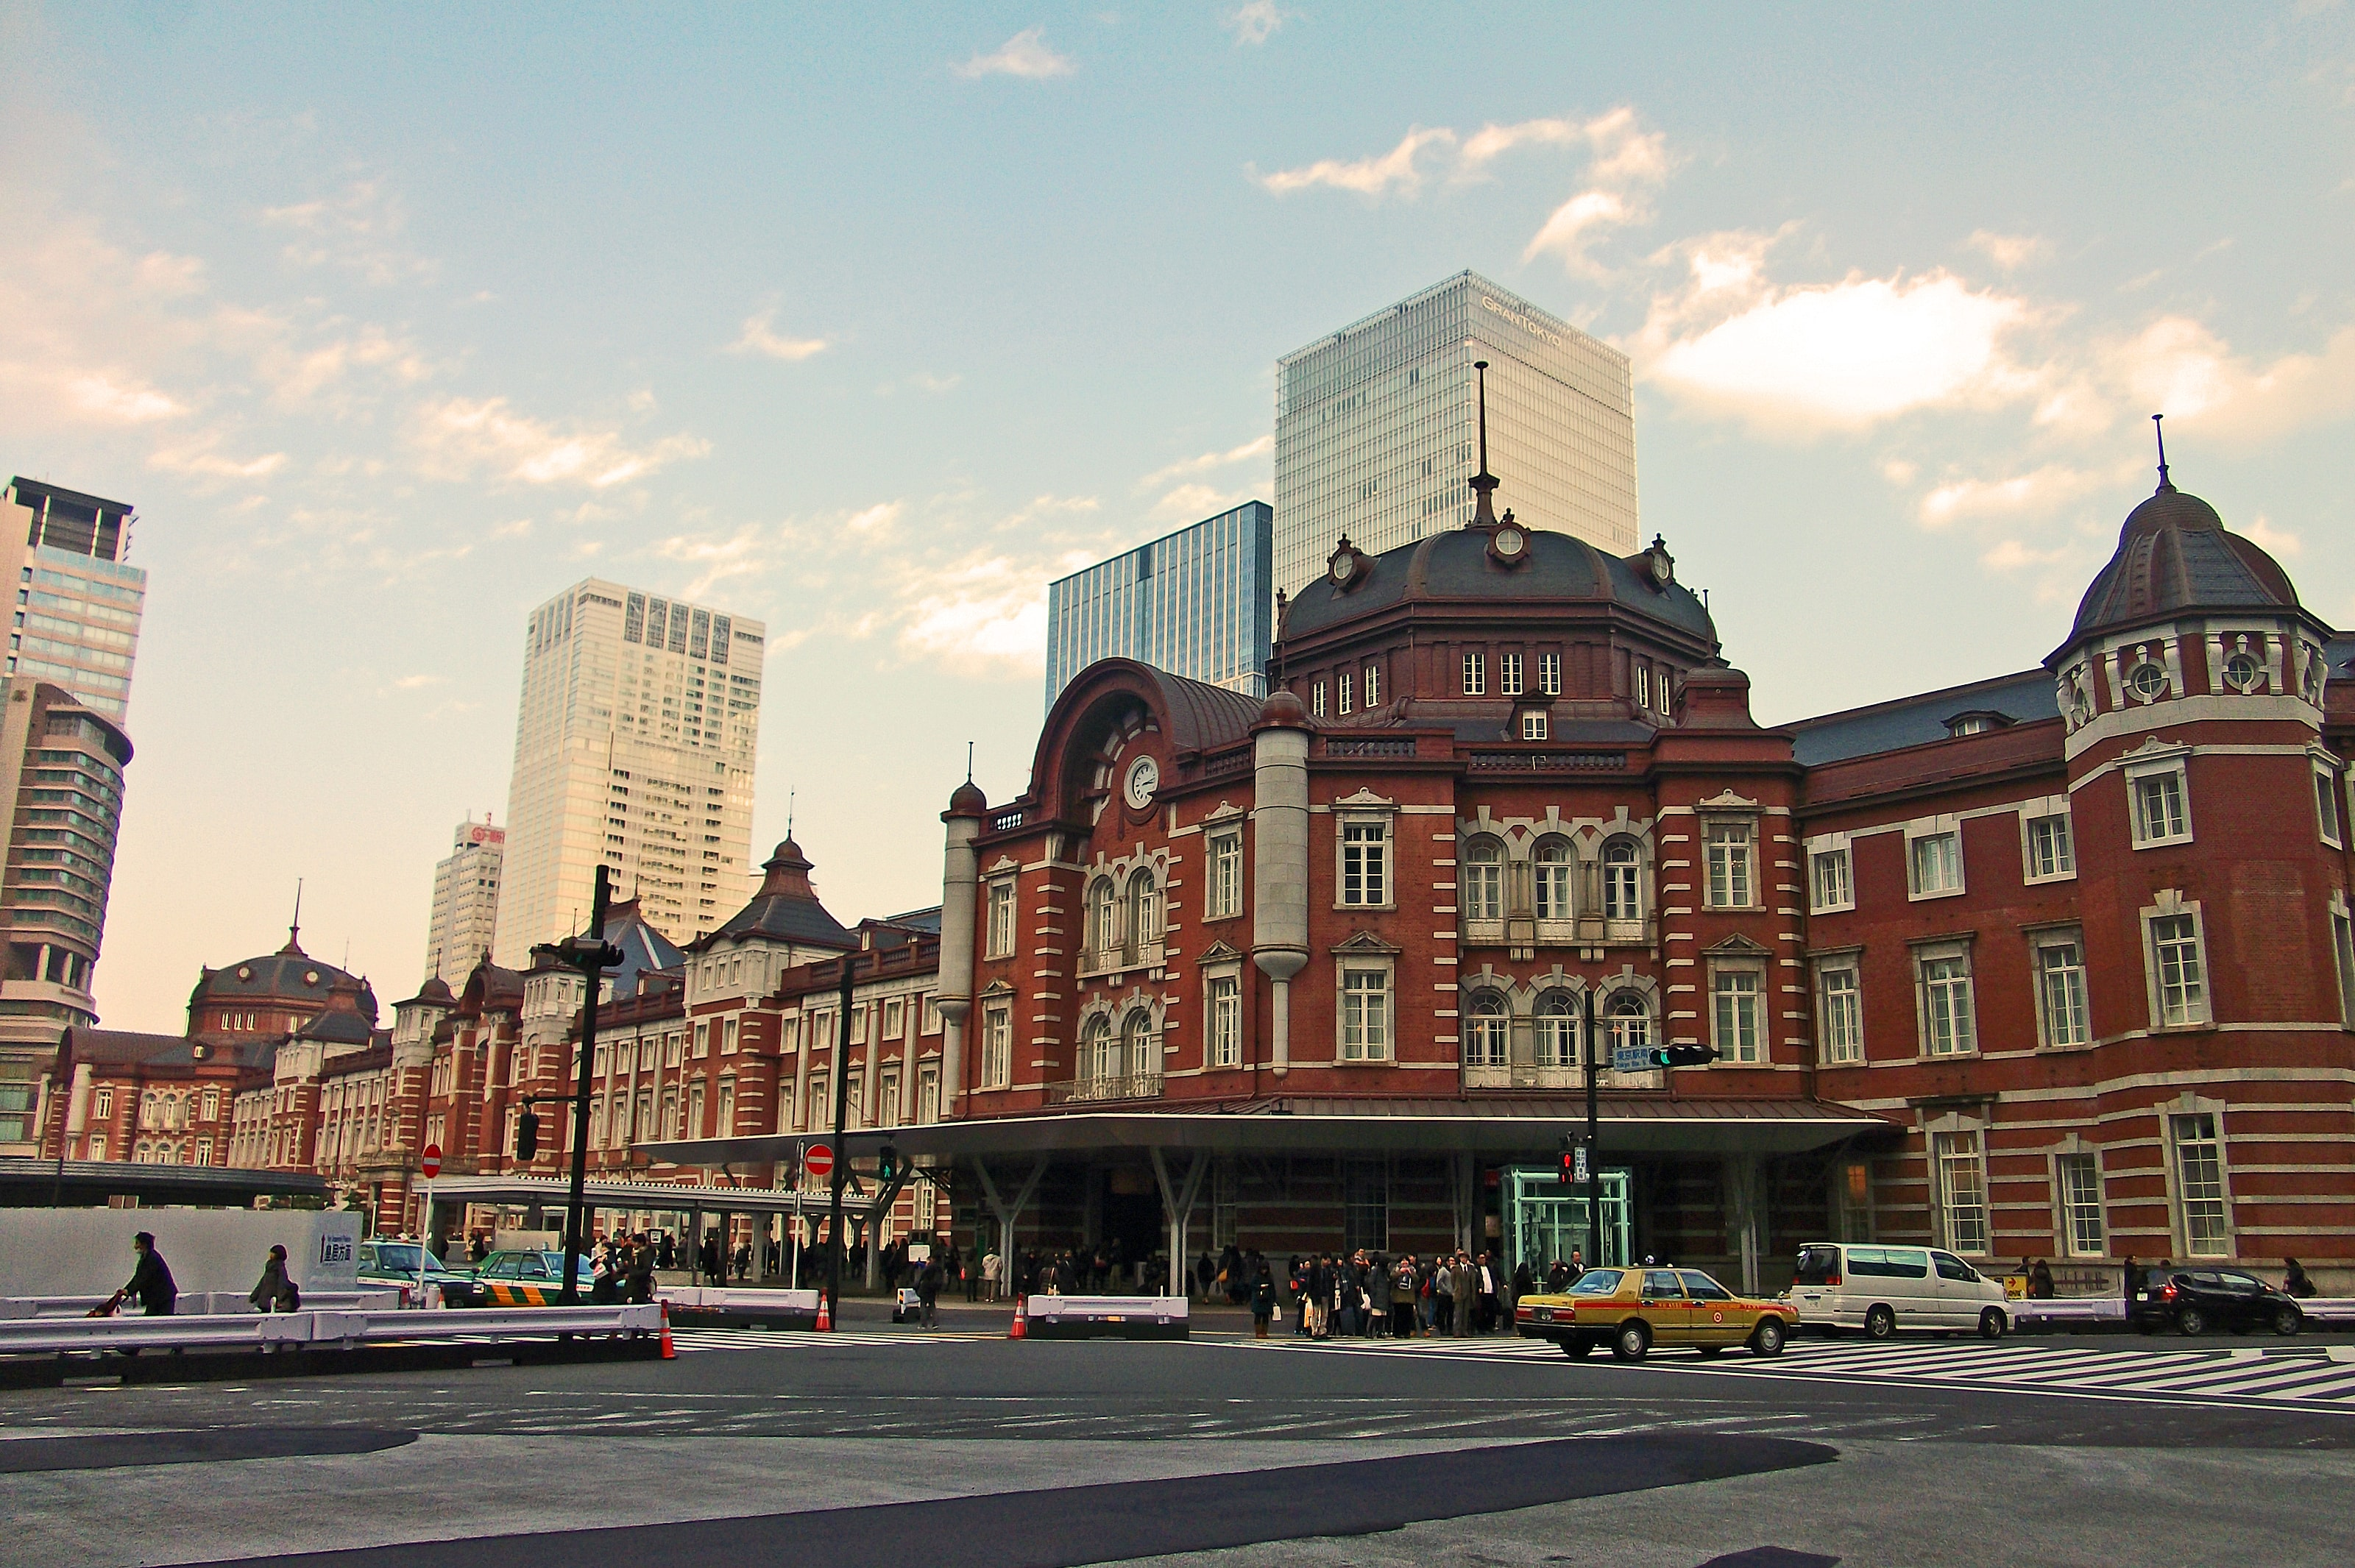 Tokyo Station from outside